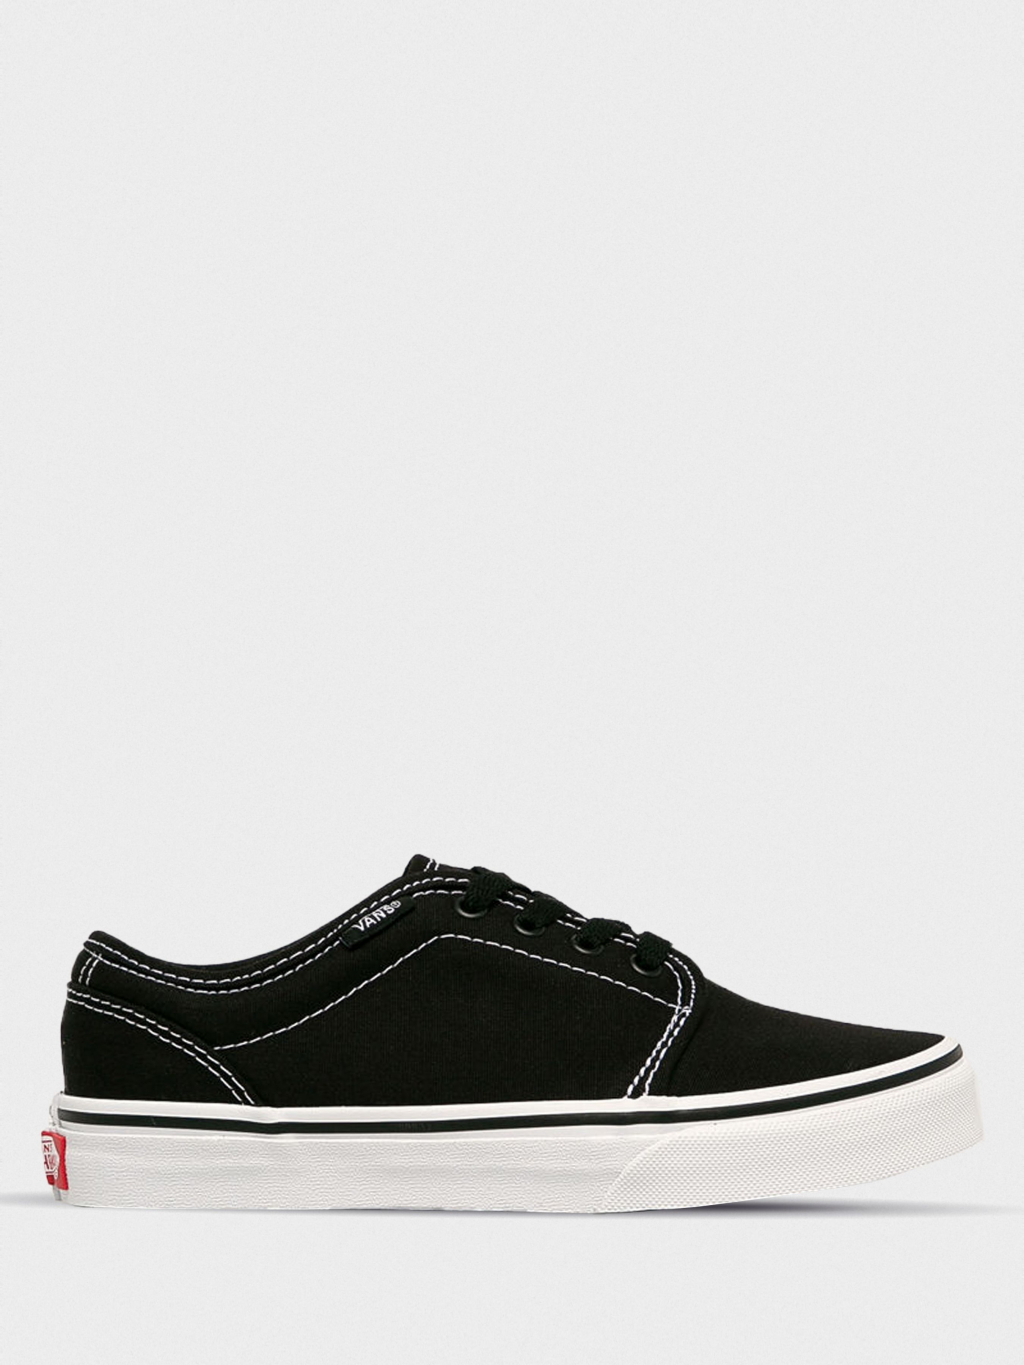 Кеды детские Vans 106 Vulcanized VN0A4UH66BT